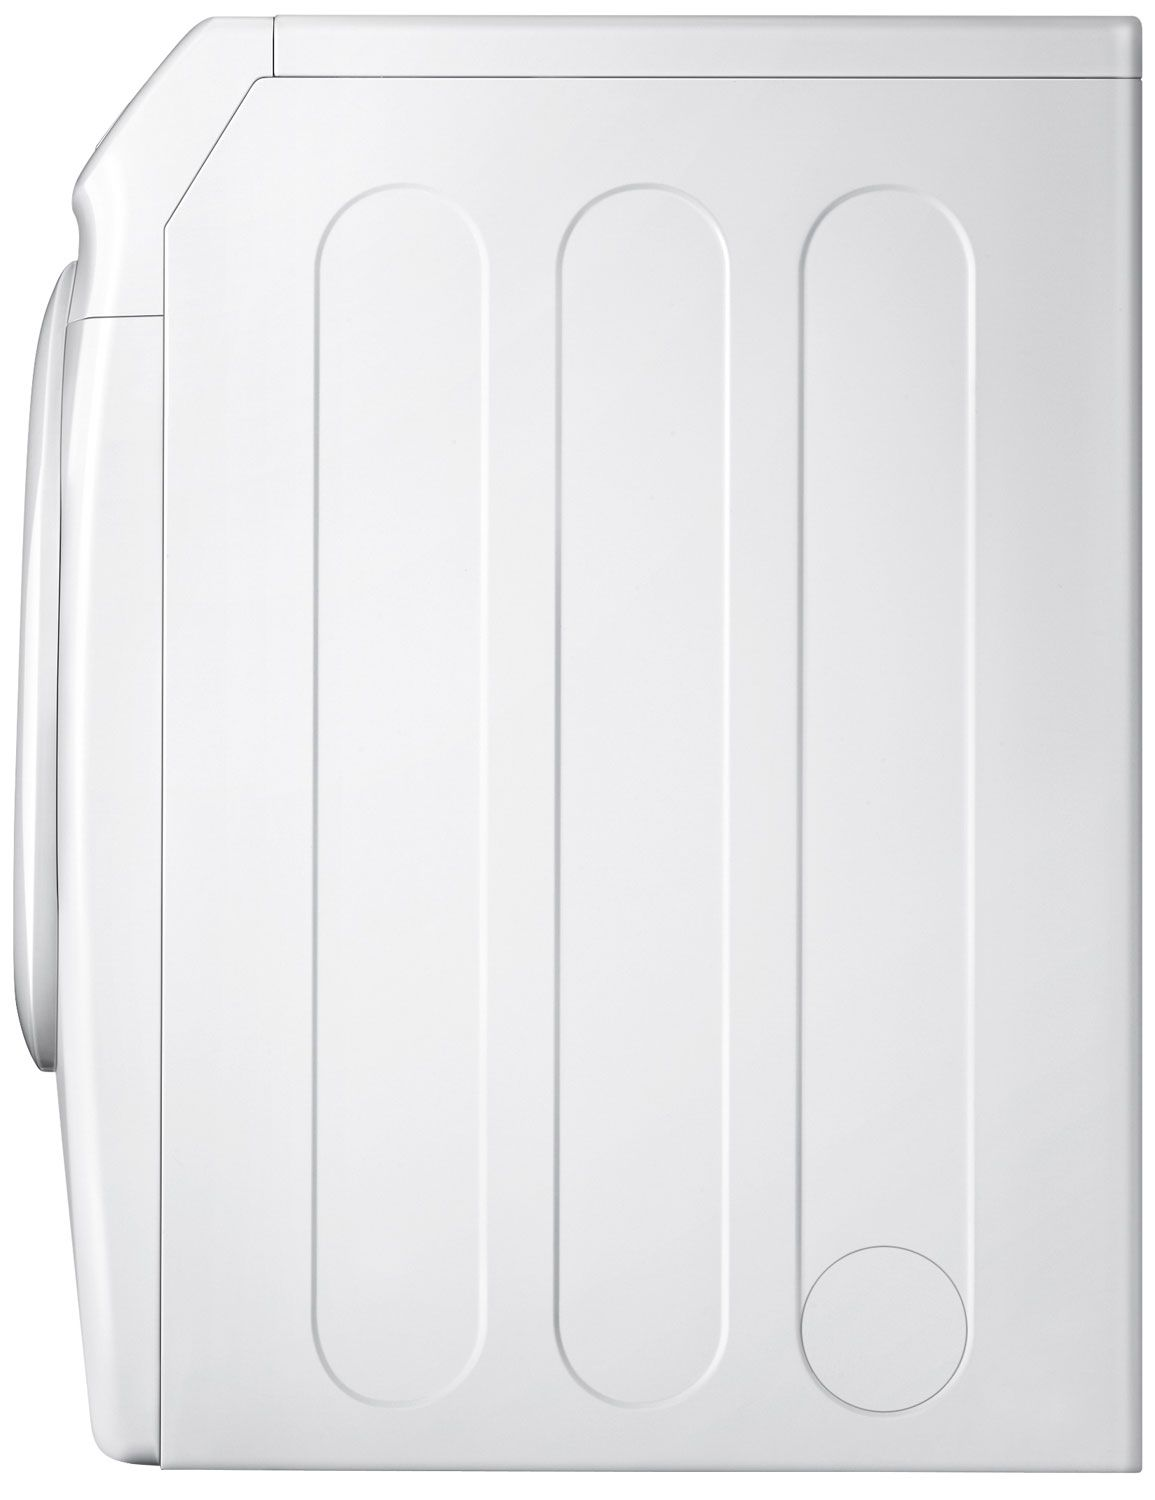 Samsung White Front-Load Electrical Dryer